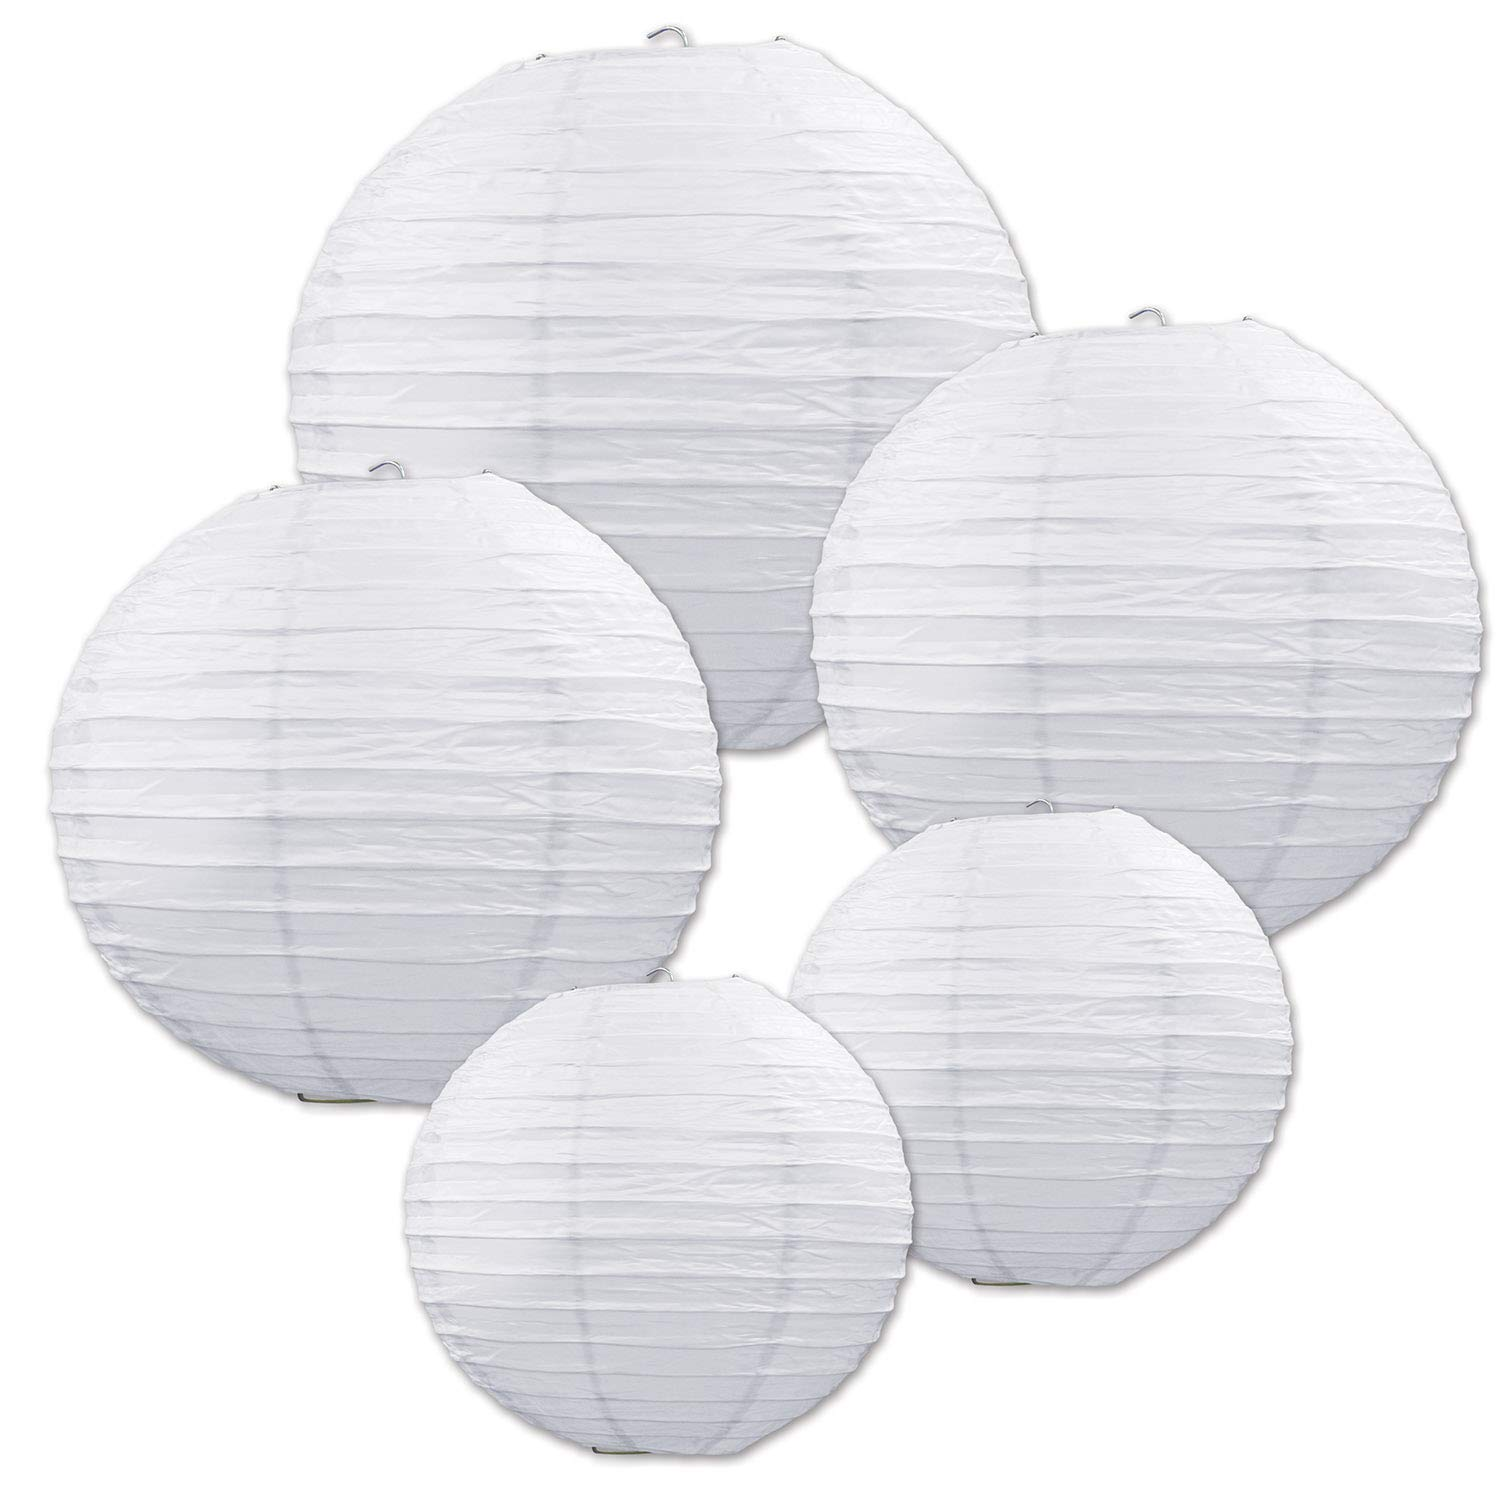 Beistle Wedding Decorations Paper Lanterns, White Assortment Paper Lanterns 6 Inch, 8 Inch and 9.5 Inch, Pack 30